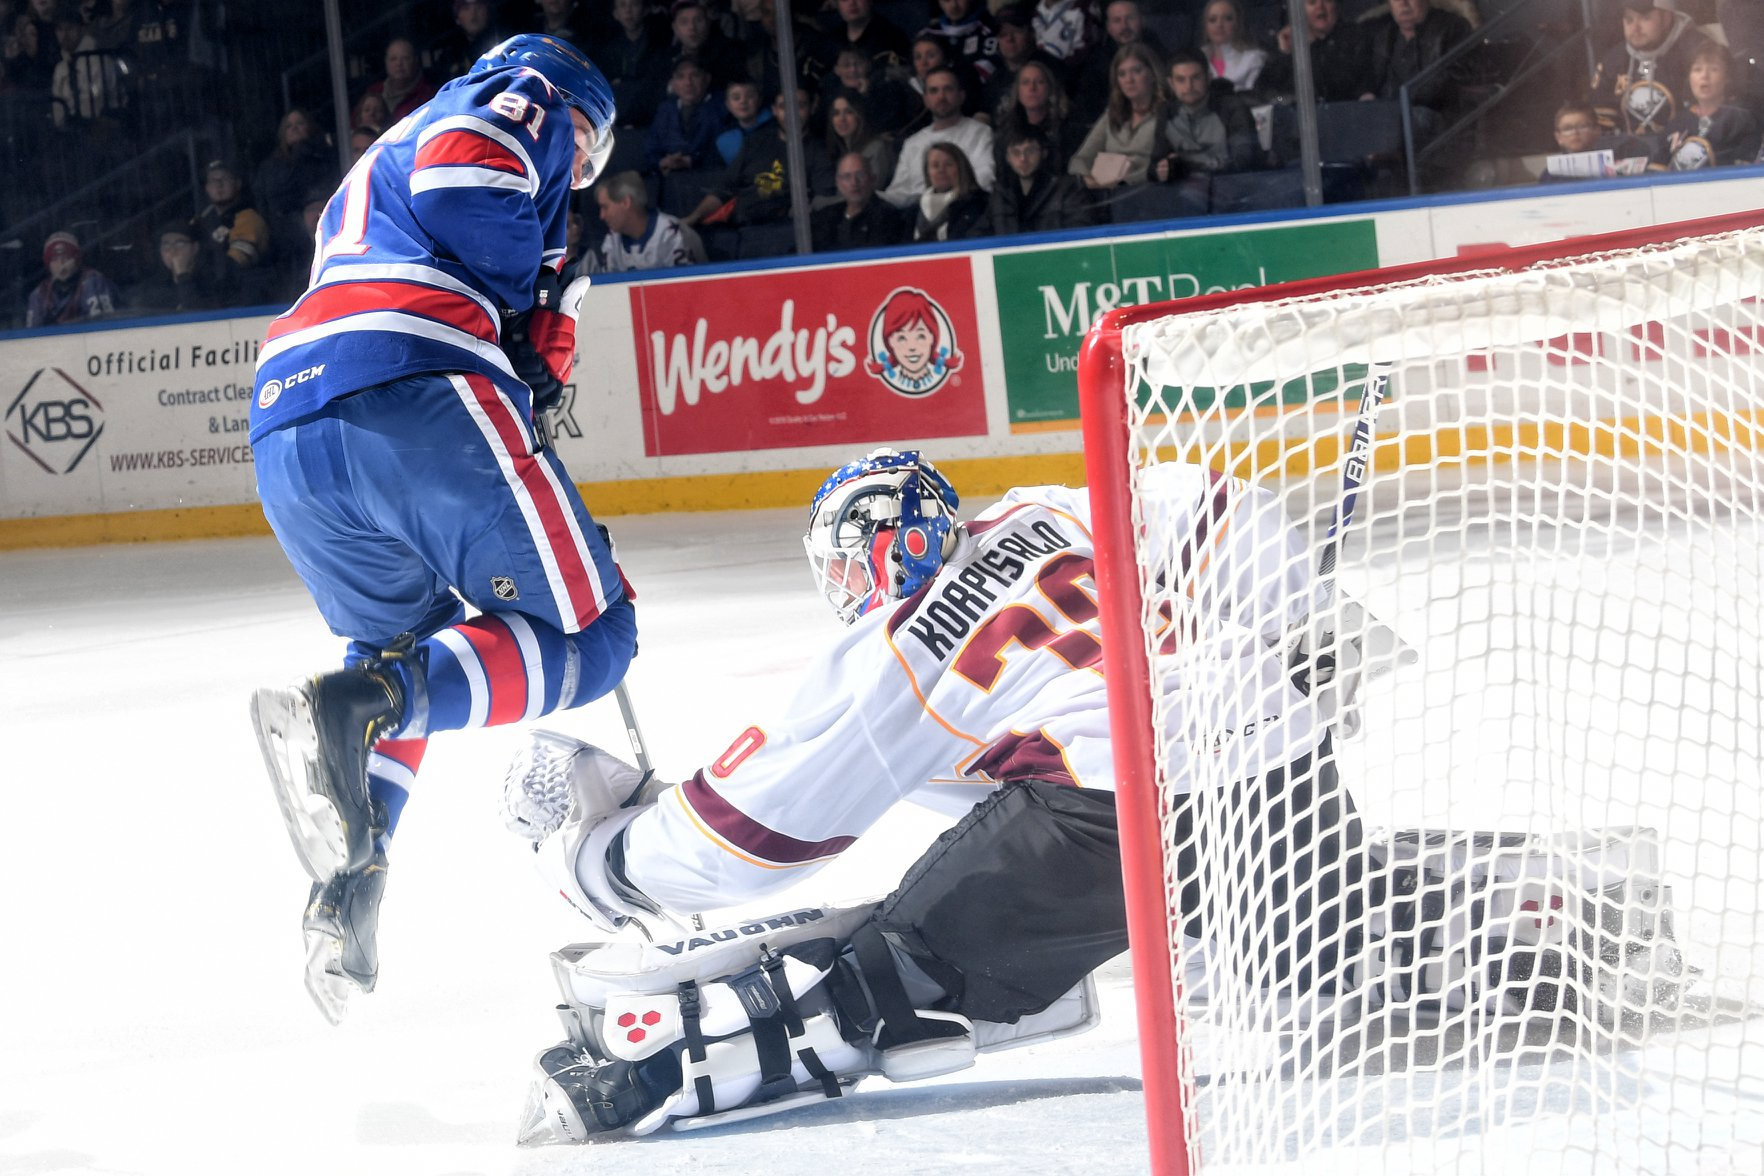 Recap: Frustration has Arrived and Another Overtime Loss for Luukkonen